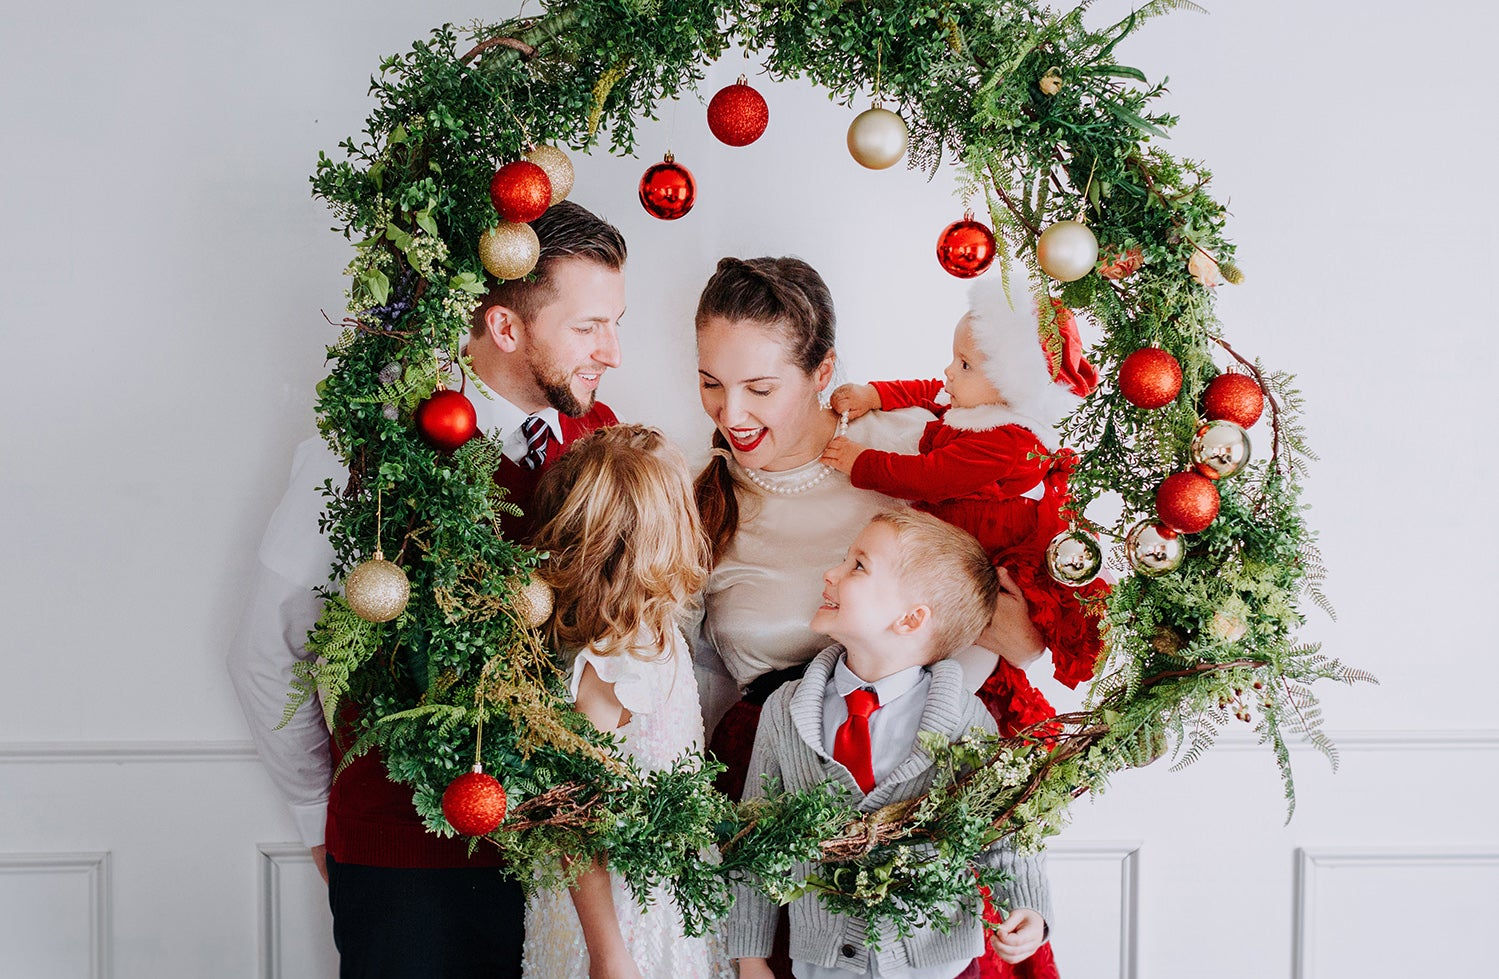 Image of Dec 7th Giant Christmas Wreath Studio Mini Sessions